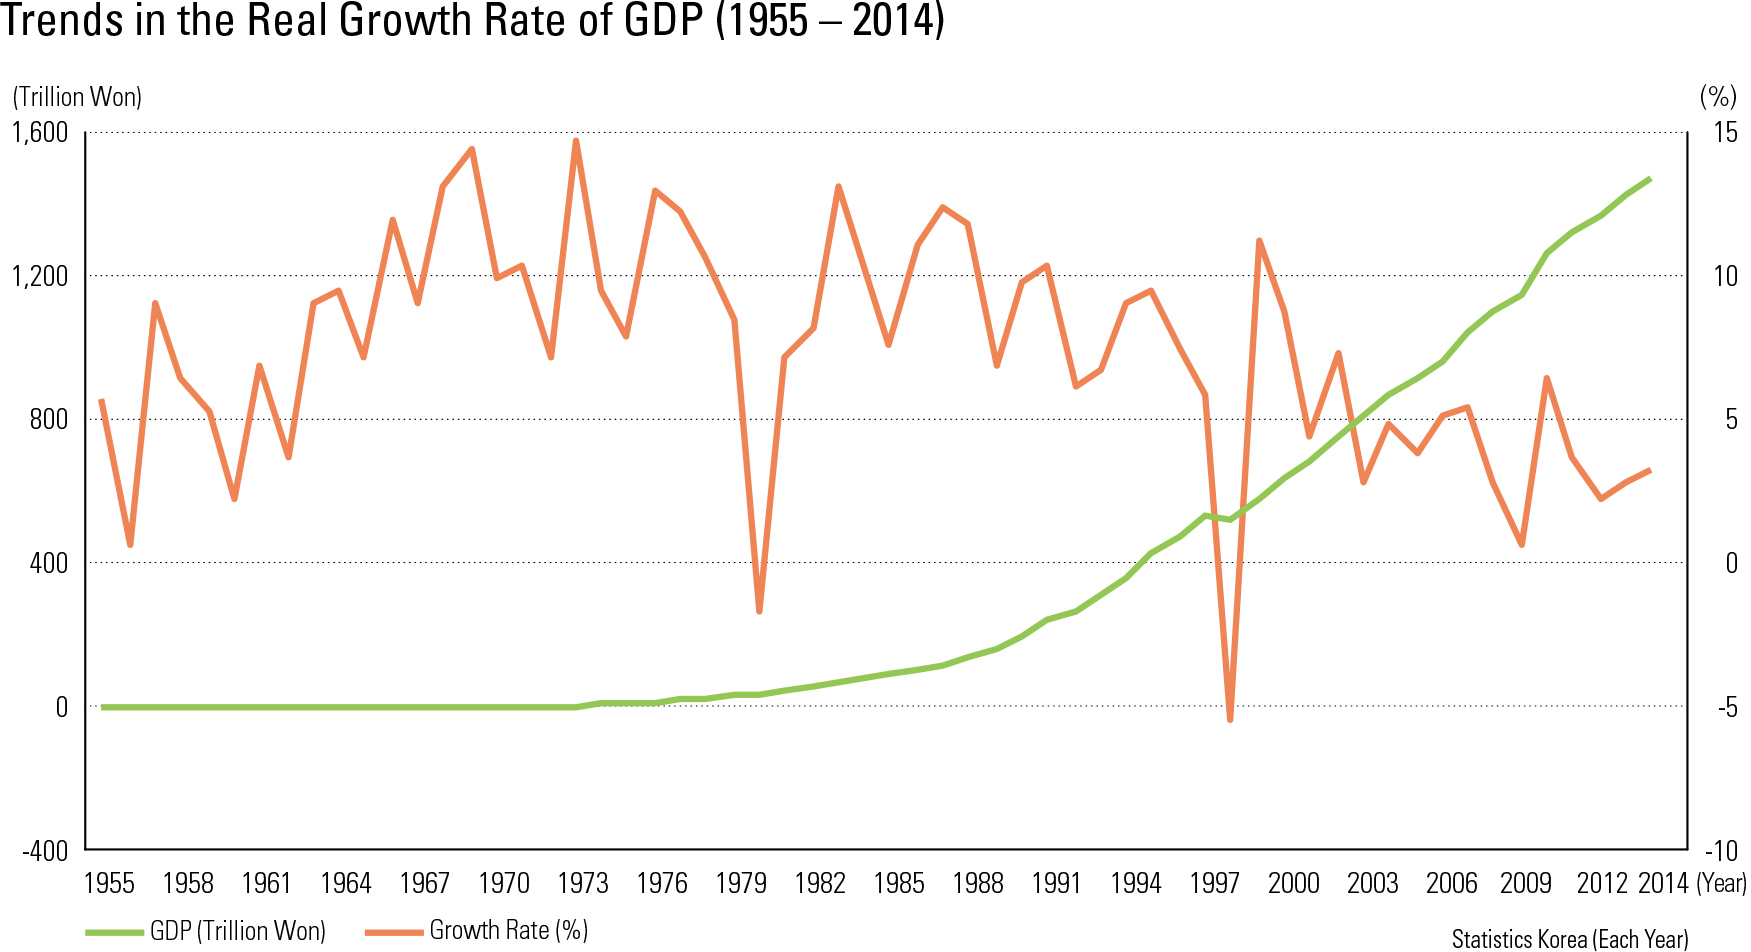 "Trends in the Real Growth Rate of GDP (1955 – 2014)<p class=""oz_zoom"" zimg=""http://imagedata.cafe24.com/us_3/us3_144-1_2.jpg""><span style=""font-family:Nanum Myeongjo;""><span style=""font-size:18px;""><span class=""label label-danger"">UPDATE DATA</span></span></p>"